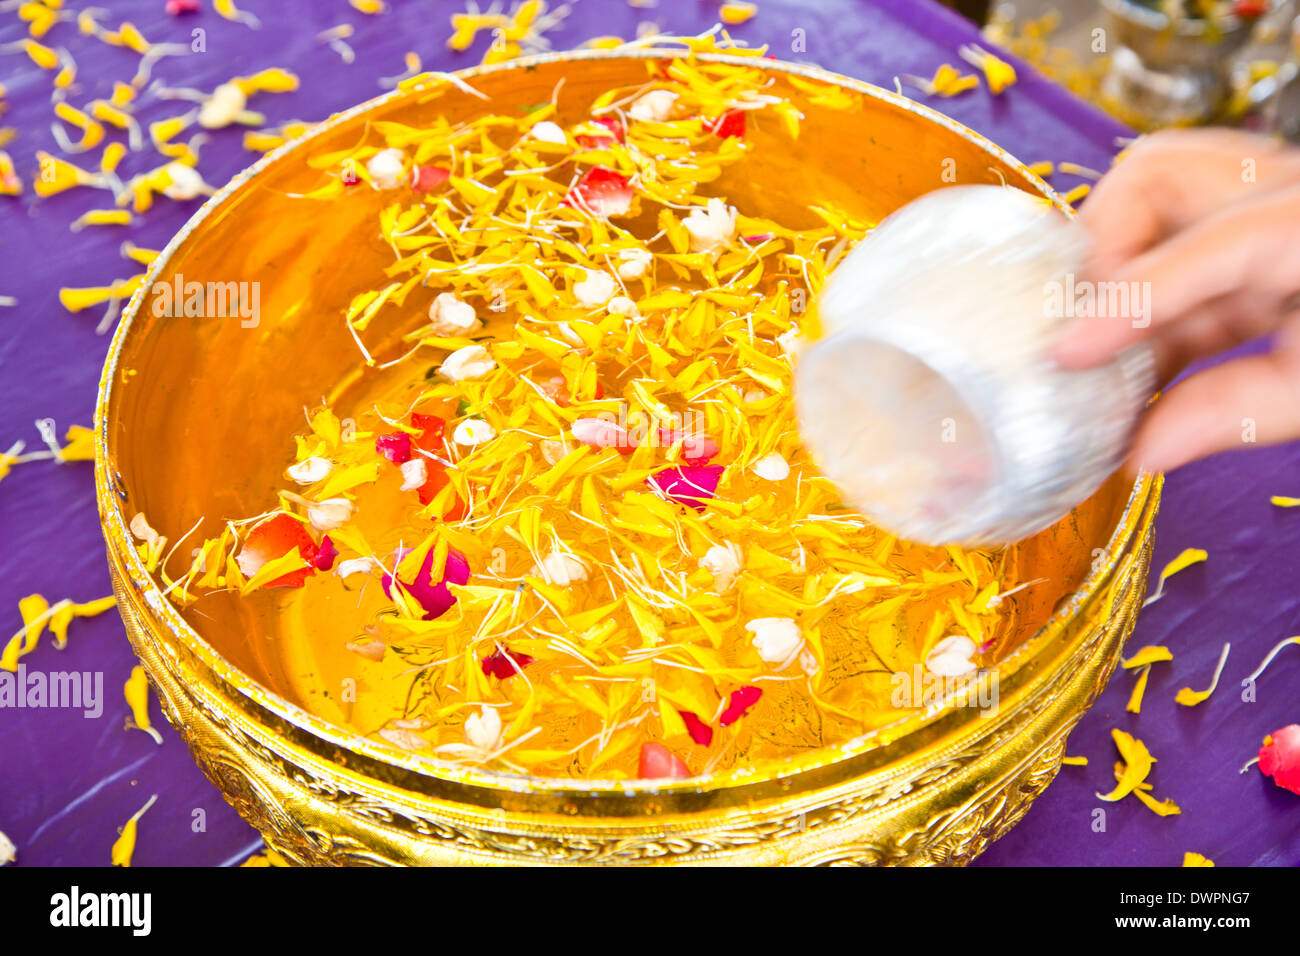 Water in bowl mixed with perfume and flowers for Songkran festival, Thailand - Stock Image